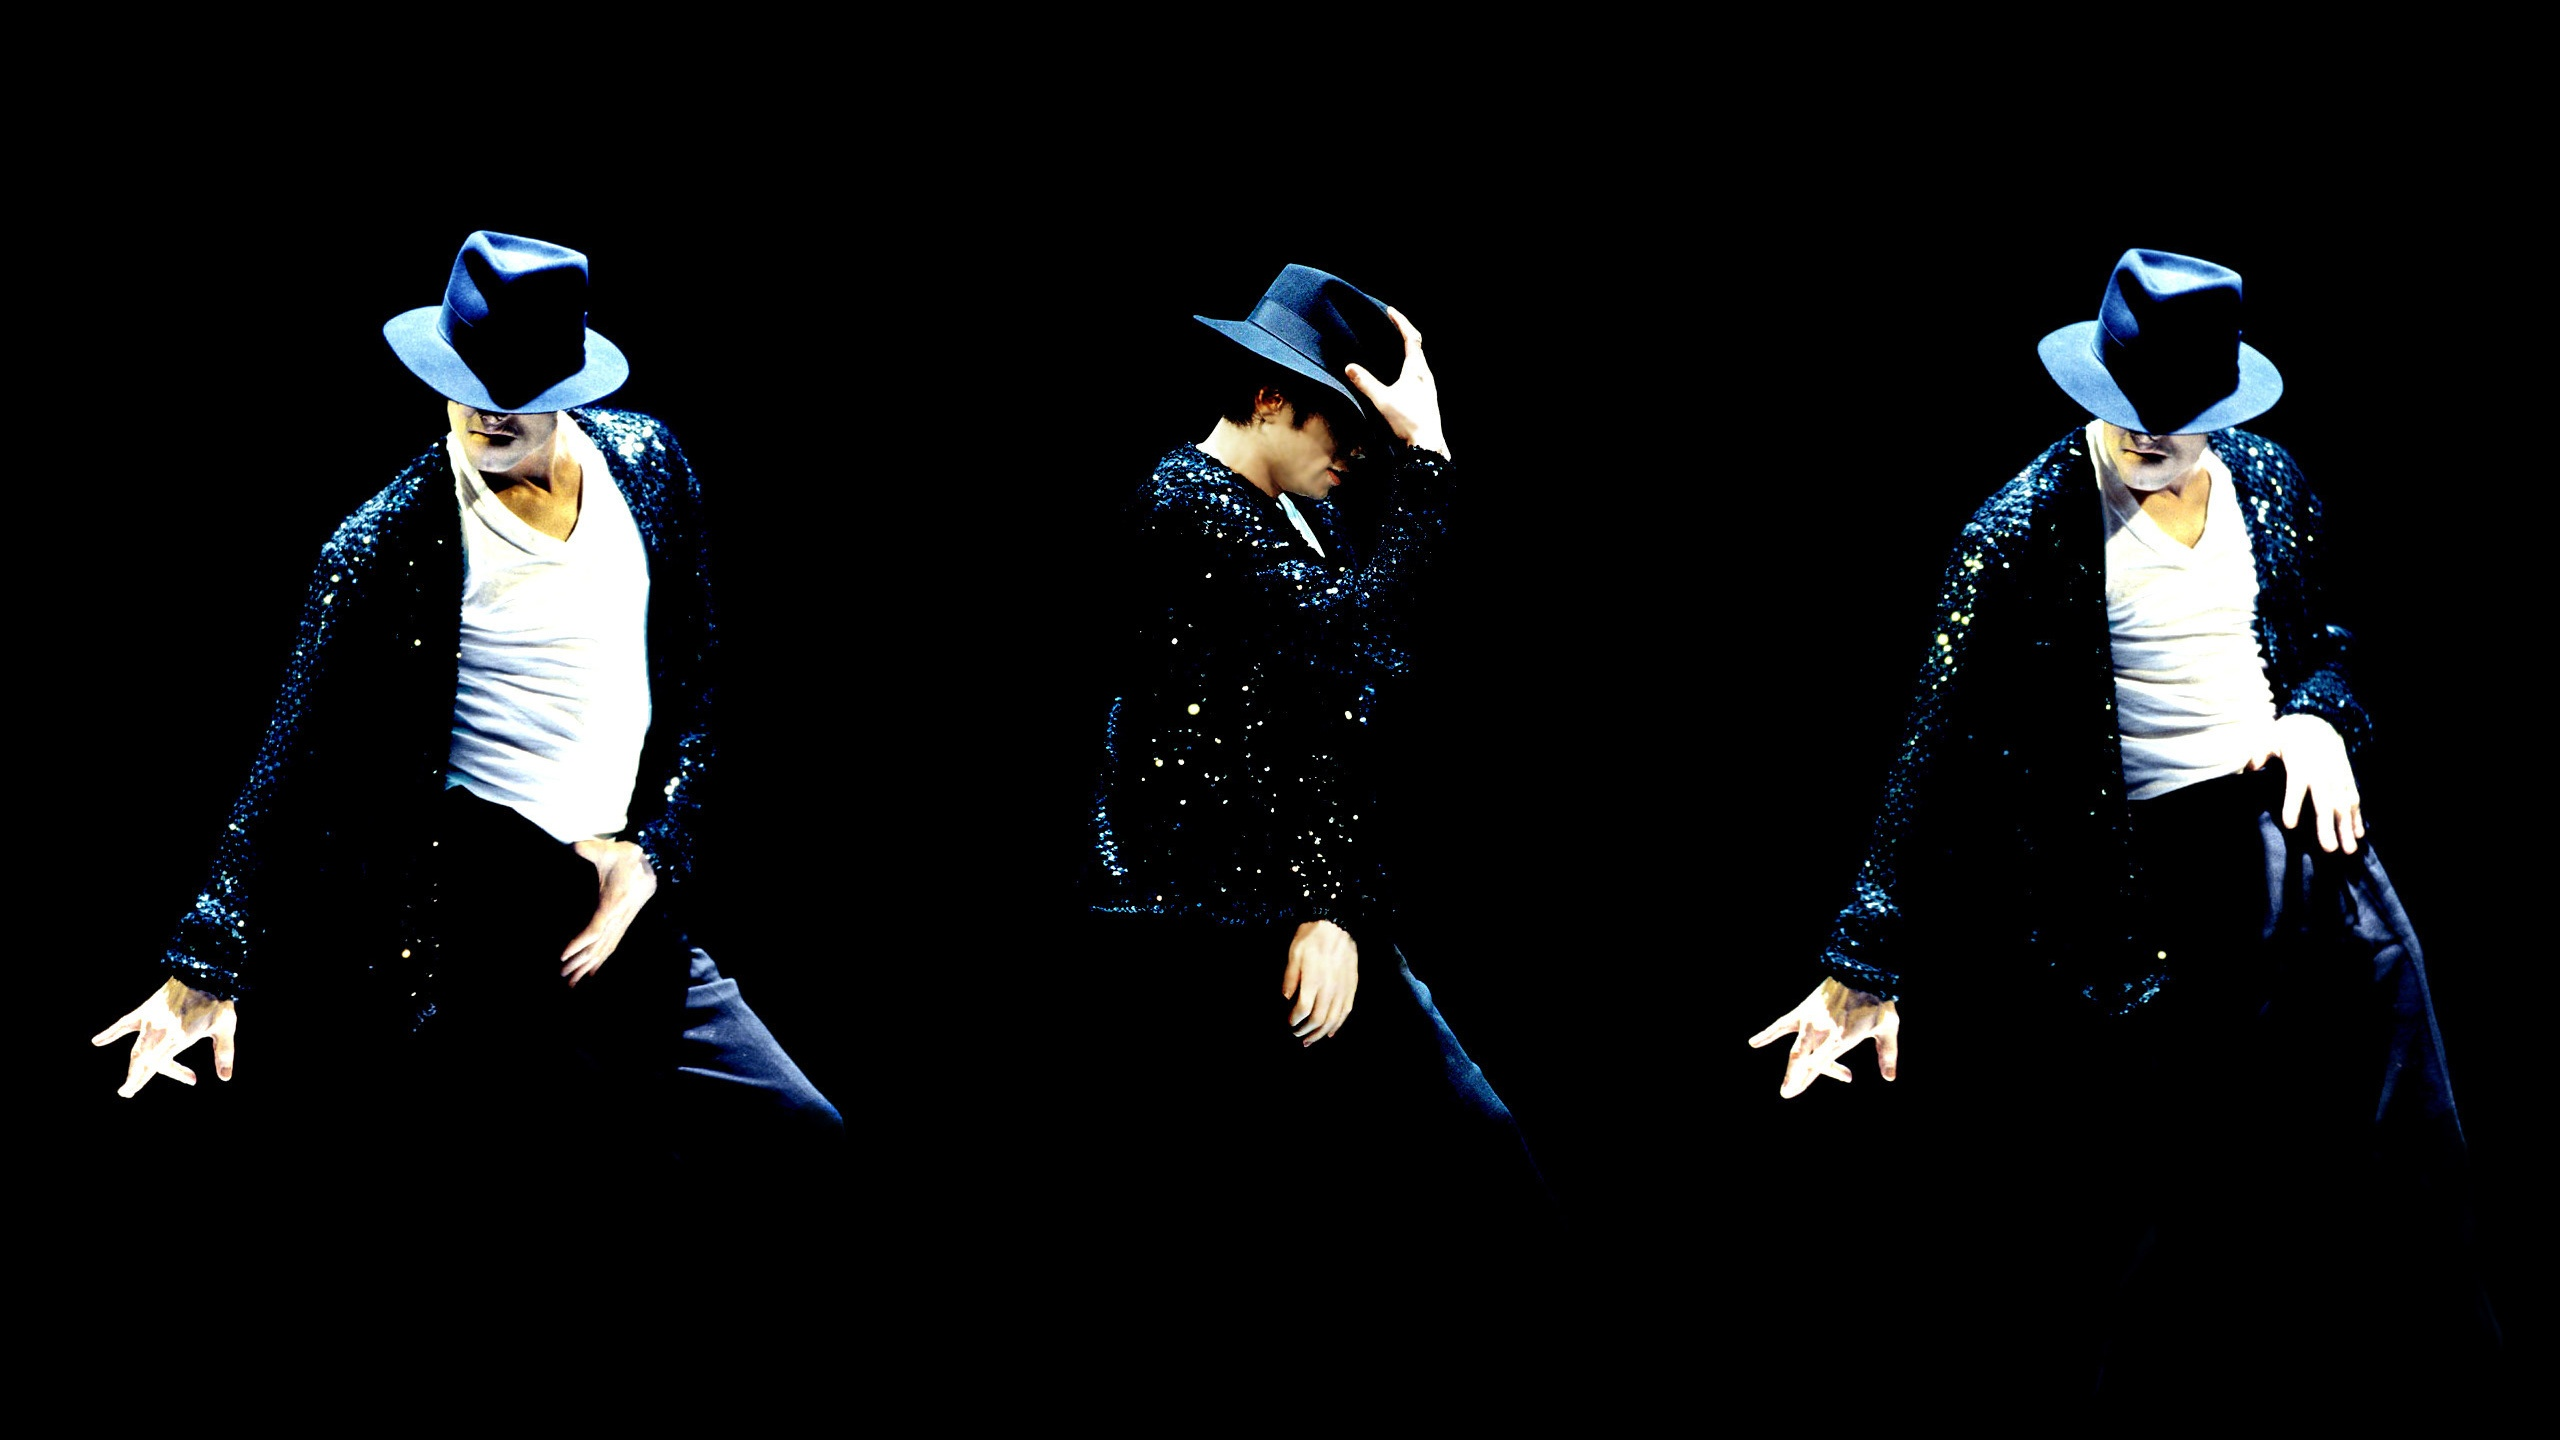 michael jackson dancing wallpapers for free download about (67